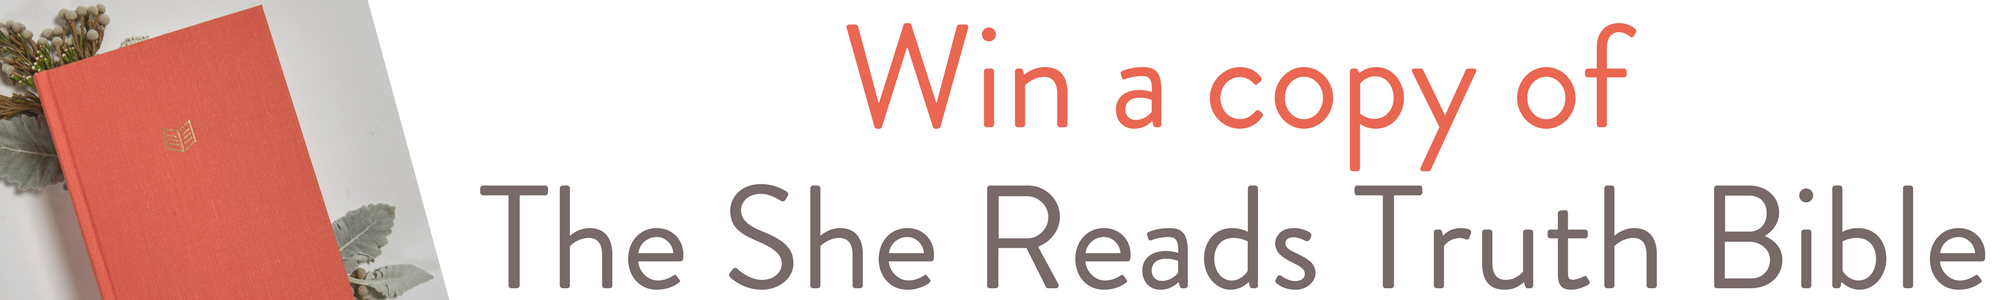 Win 1 of 5 Copies She Reads Truth